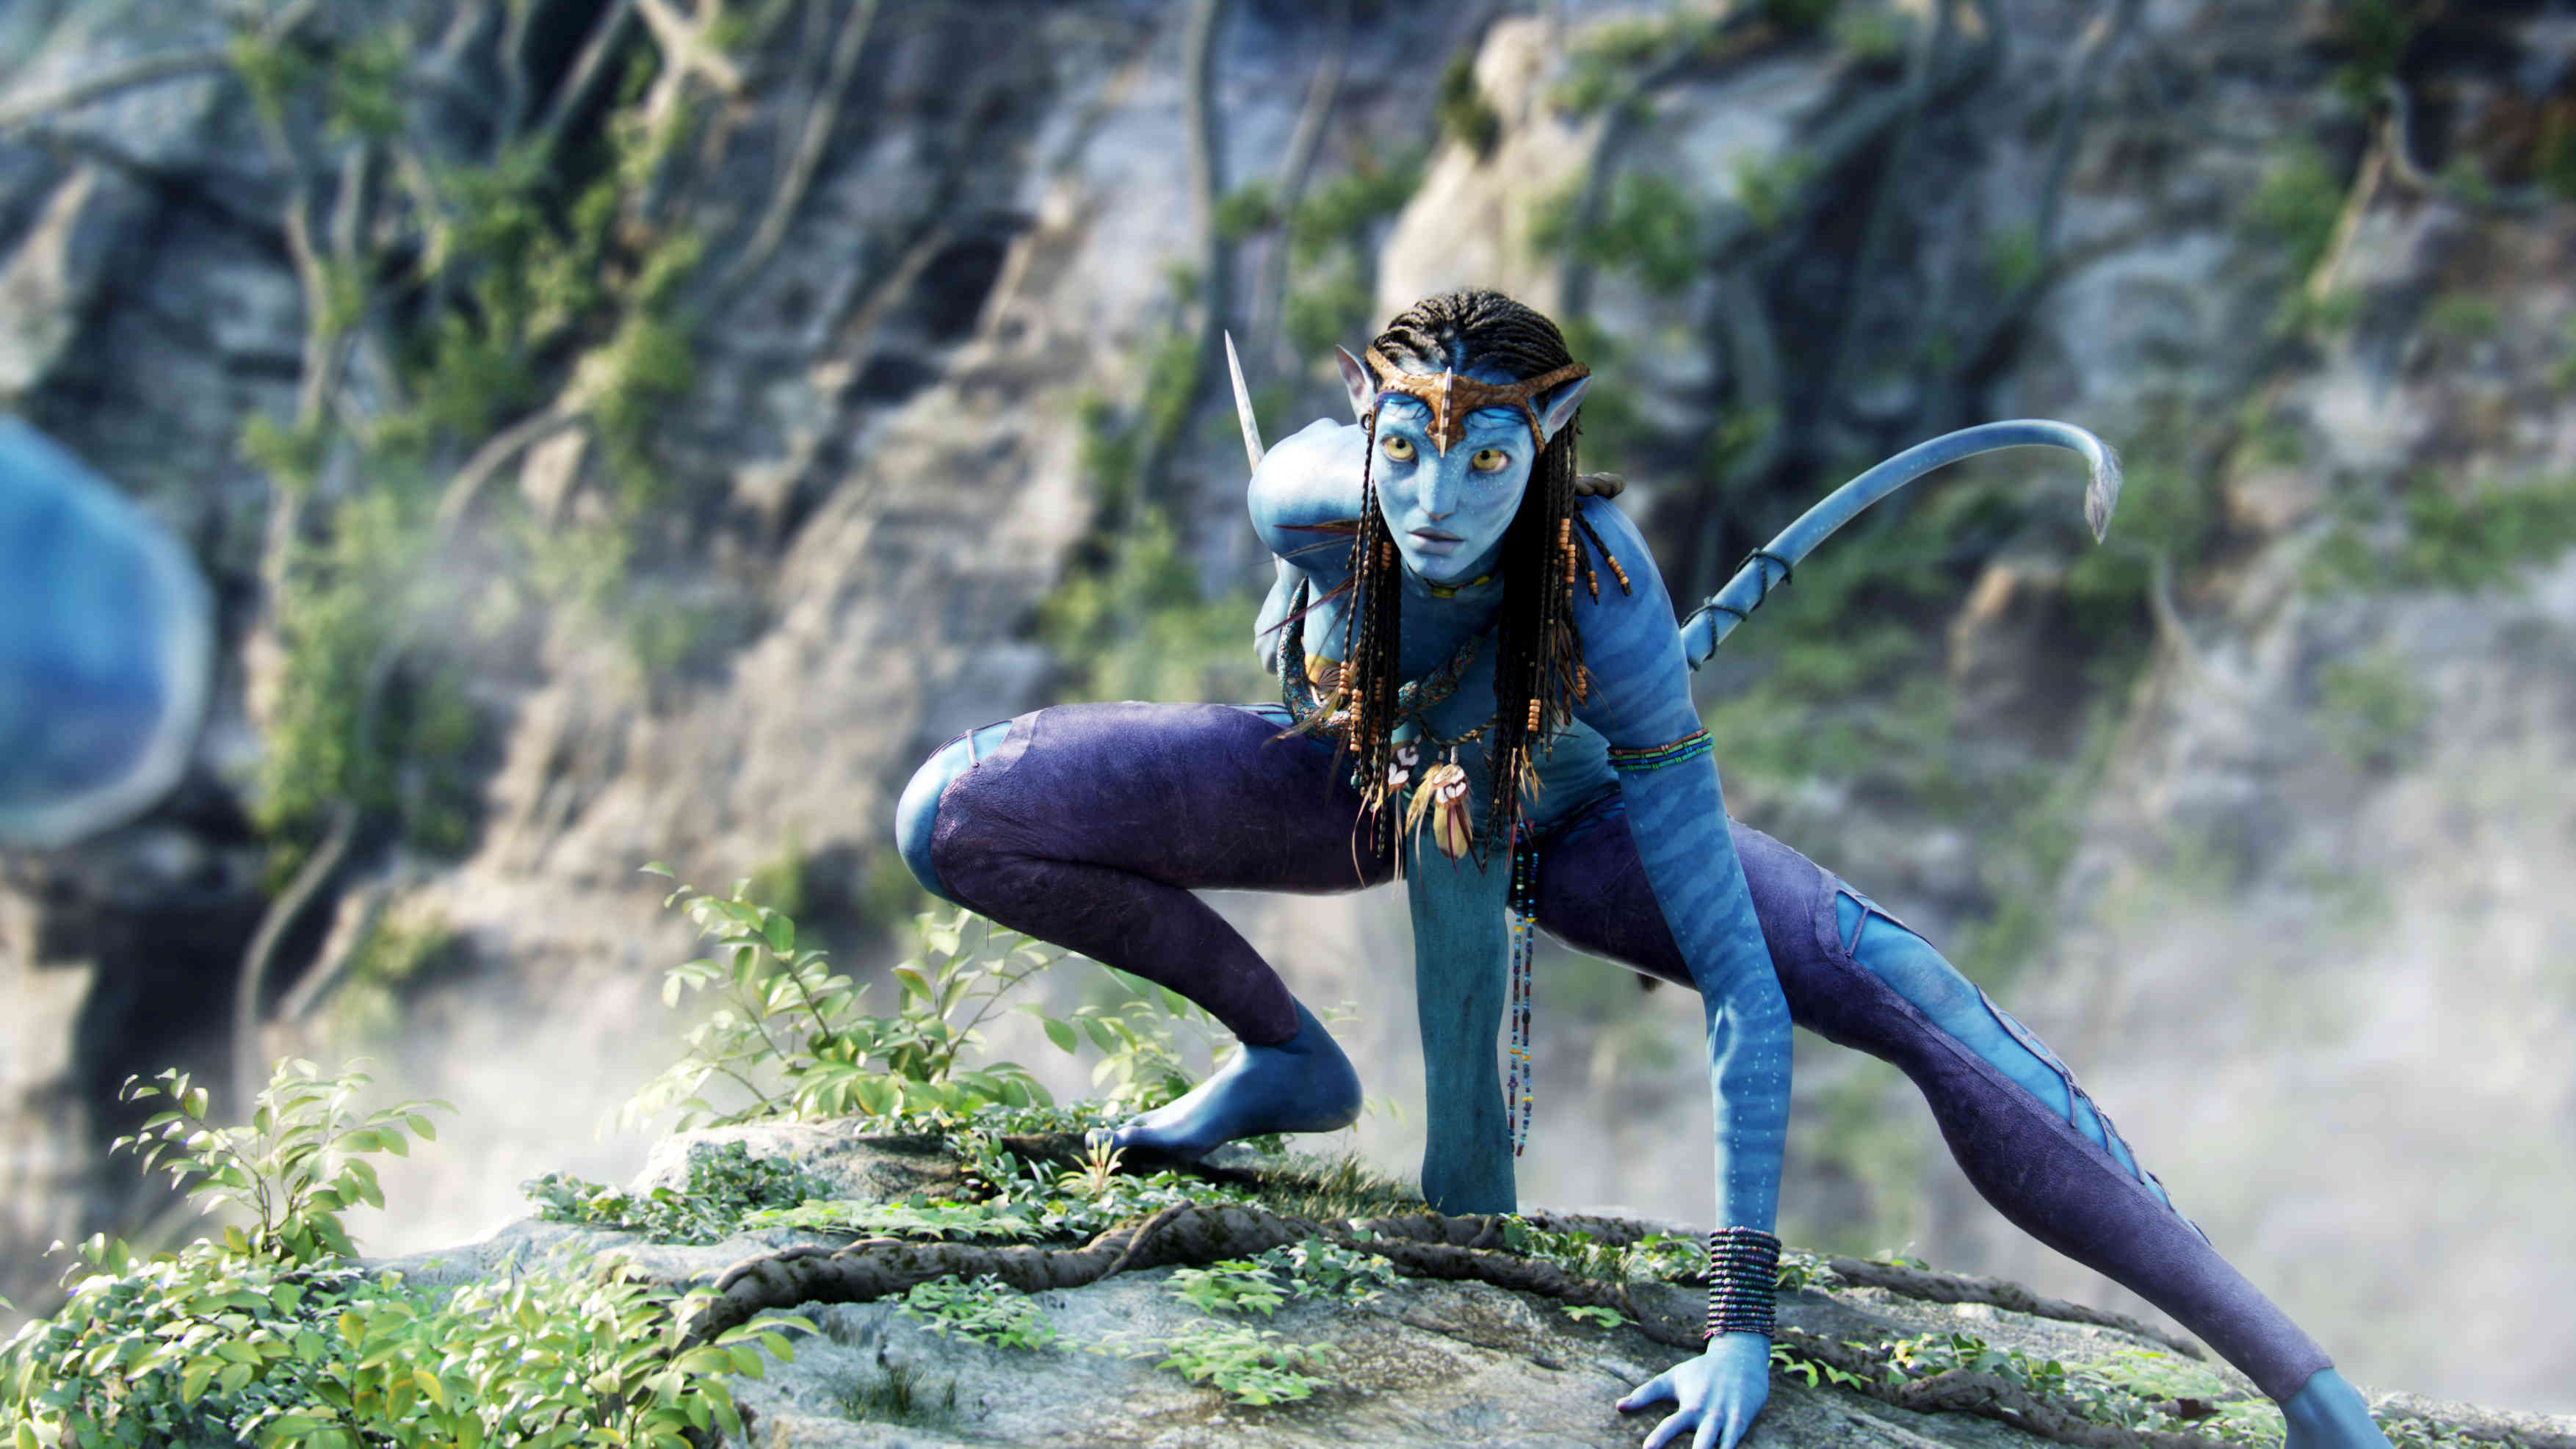 avatar all four sequels being shot simultaneously geekfeed